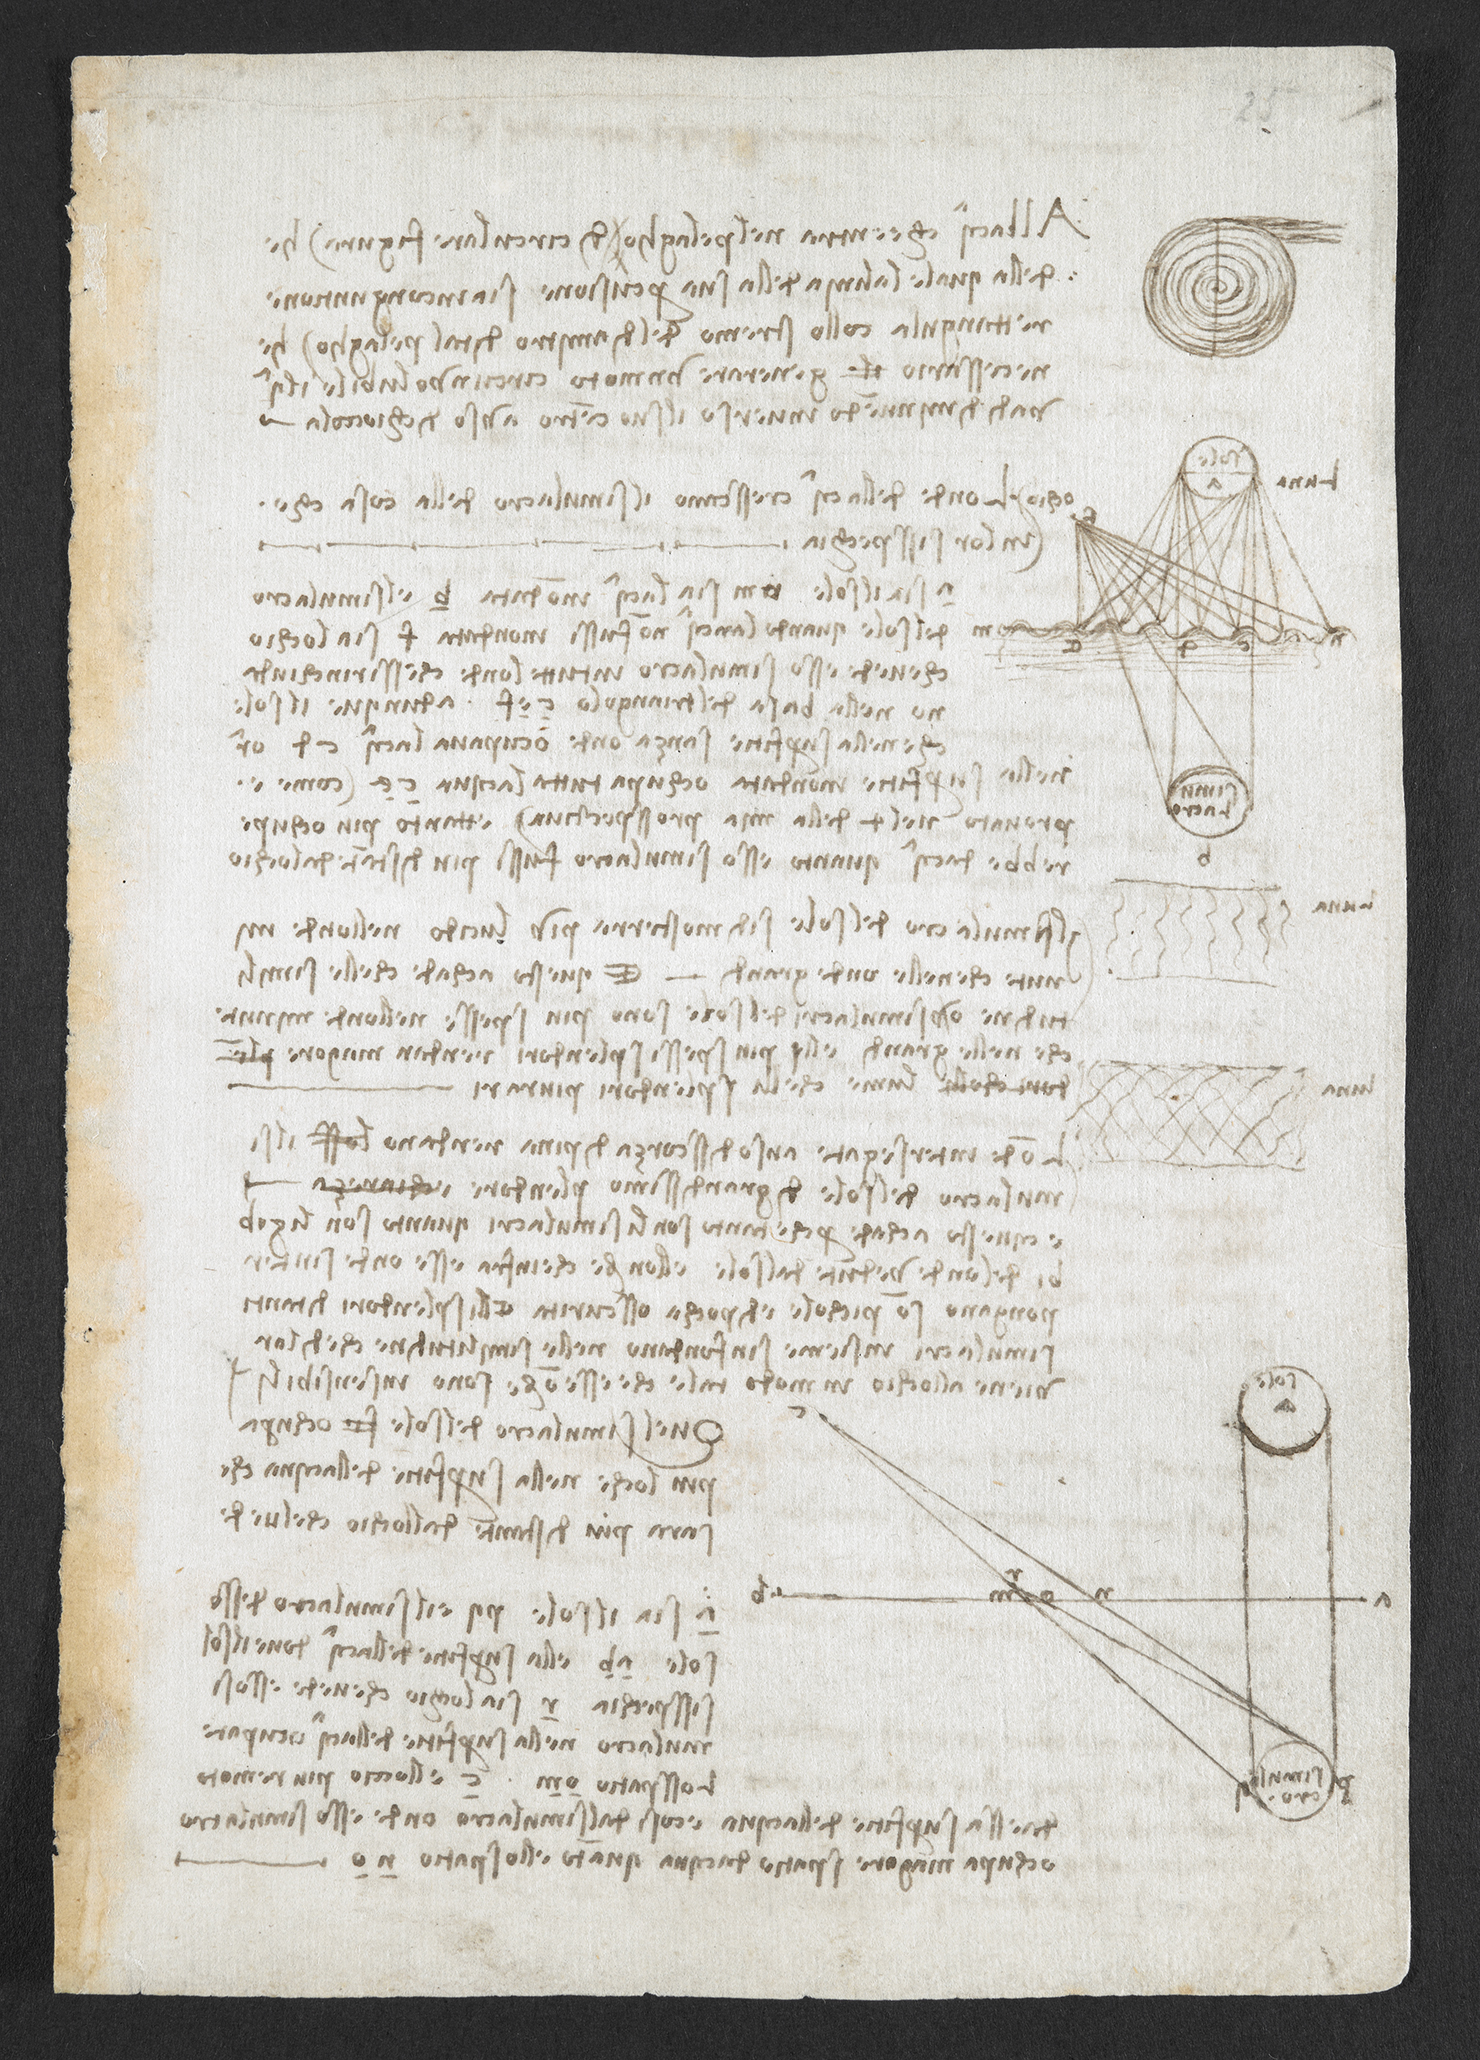 Observations on the course of the River Arno. British Library, Arundel MS 263, f. 149r © British Library Board